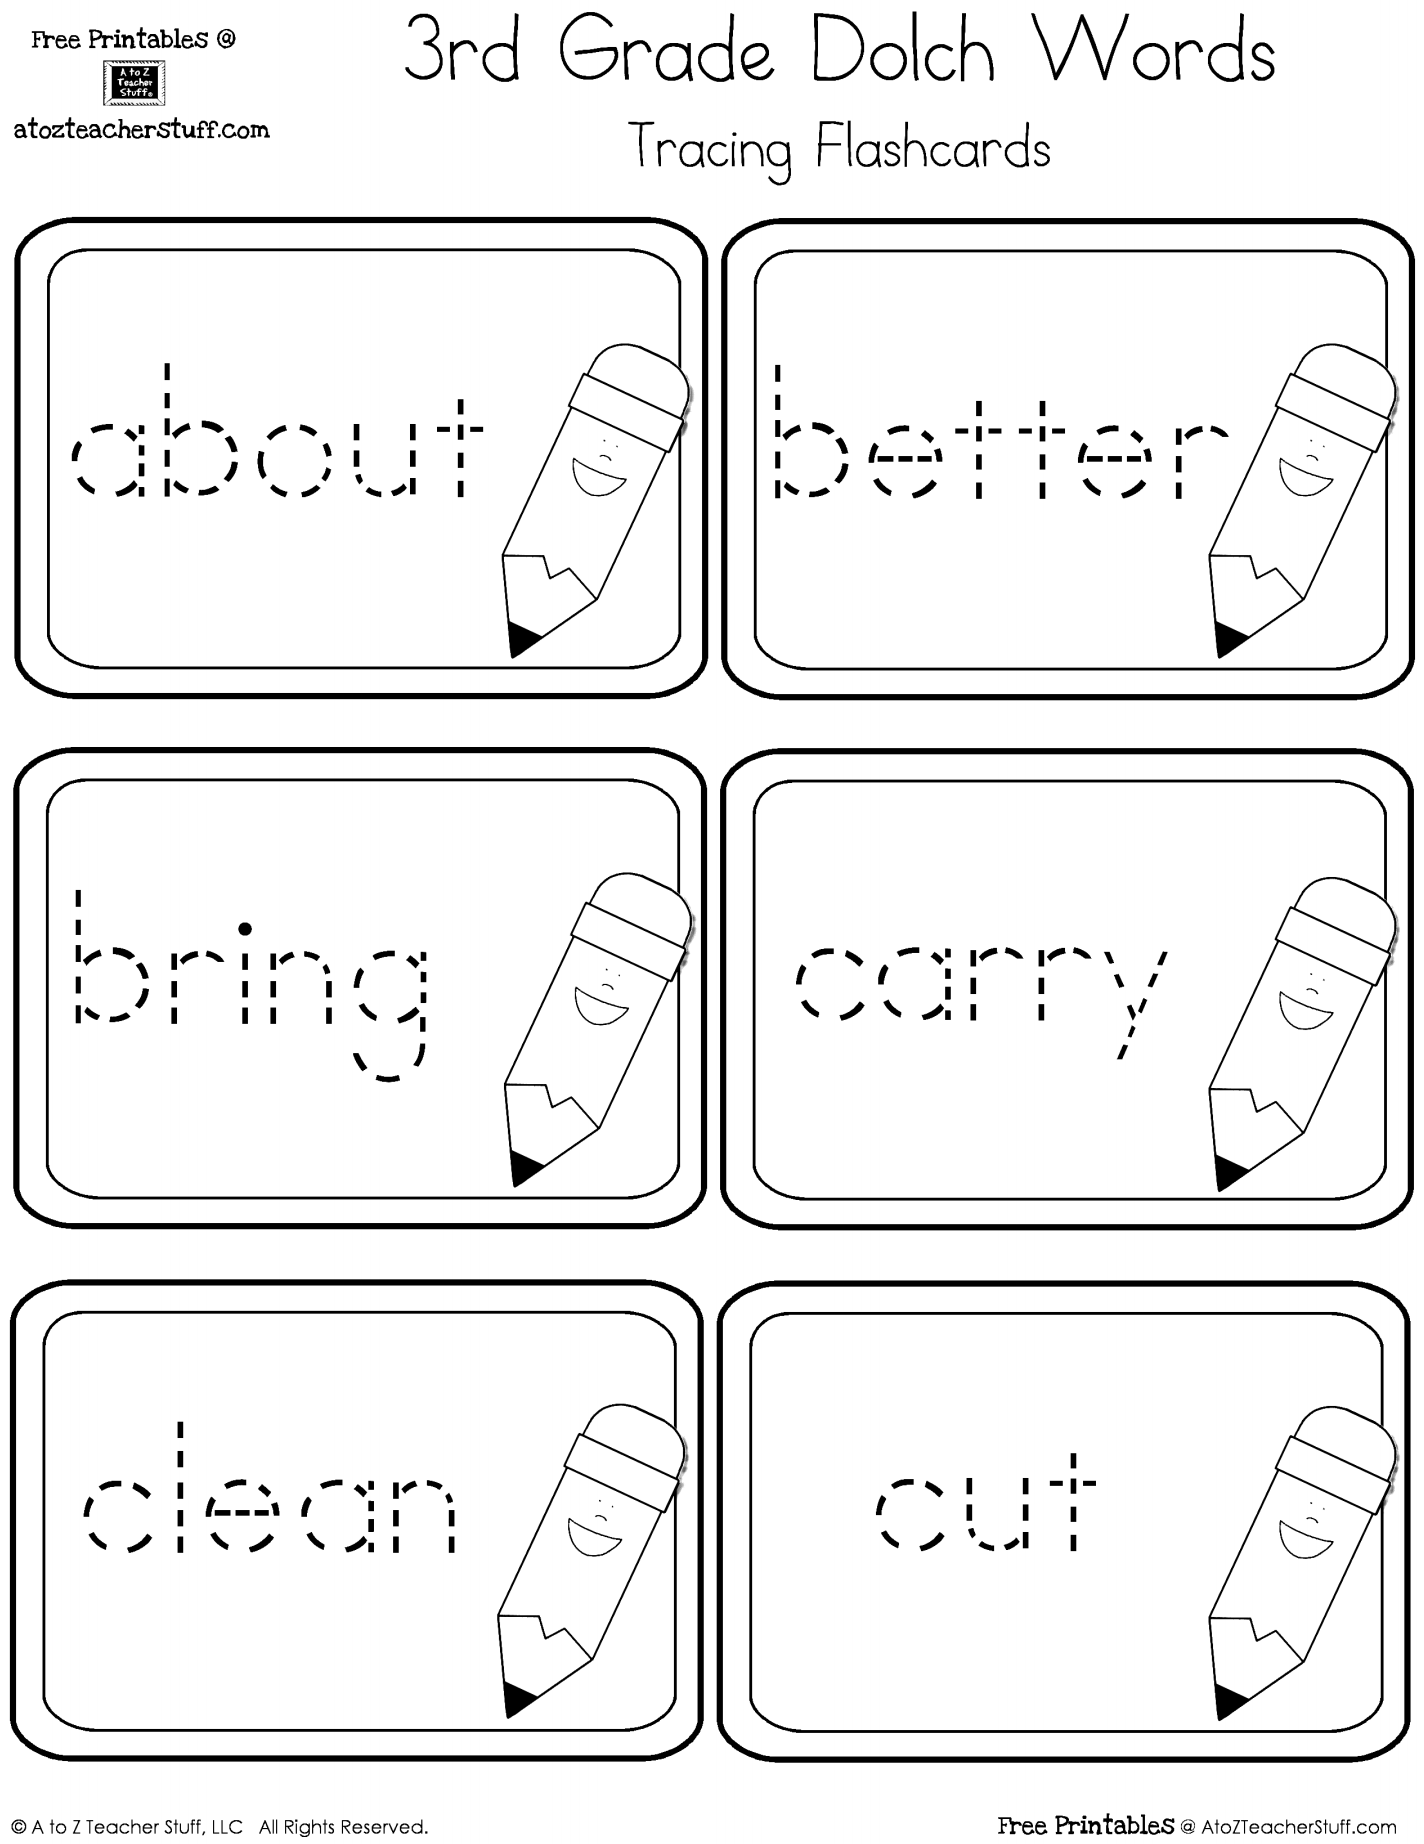 hight resolution of Third Grade Dolch Sight Words Tracing Flashcards   A to Z Teacher Stuff  Printable Pages and Worksheets